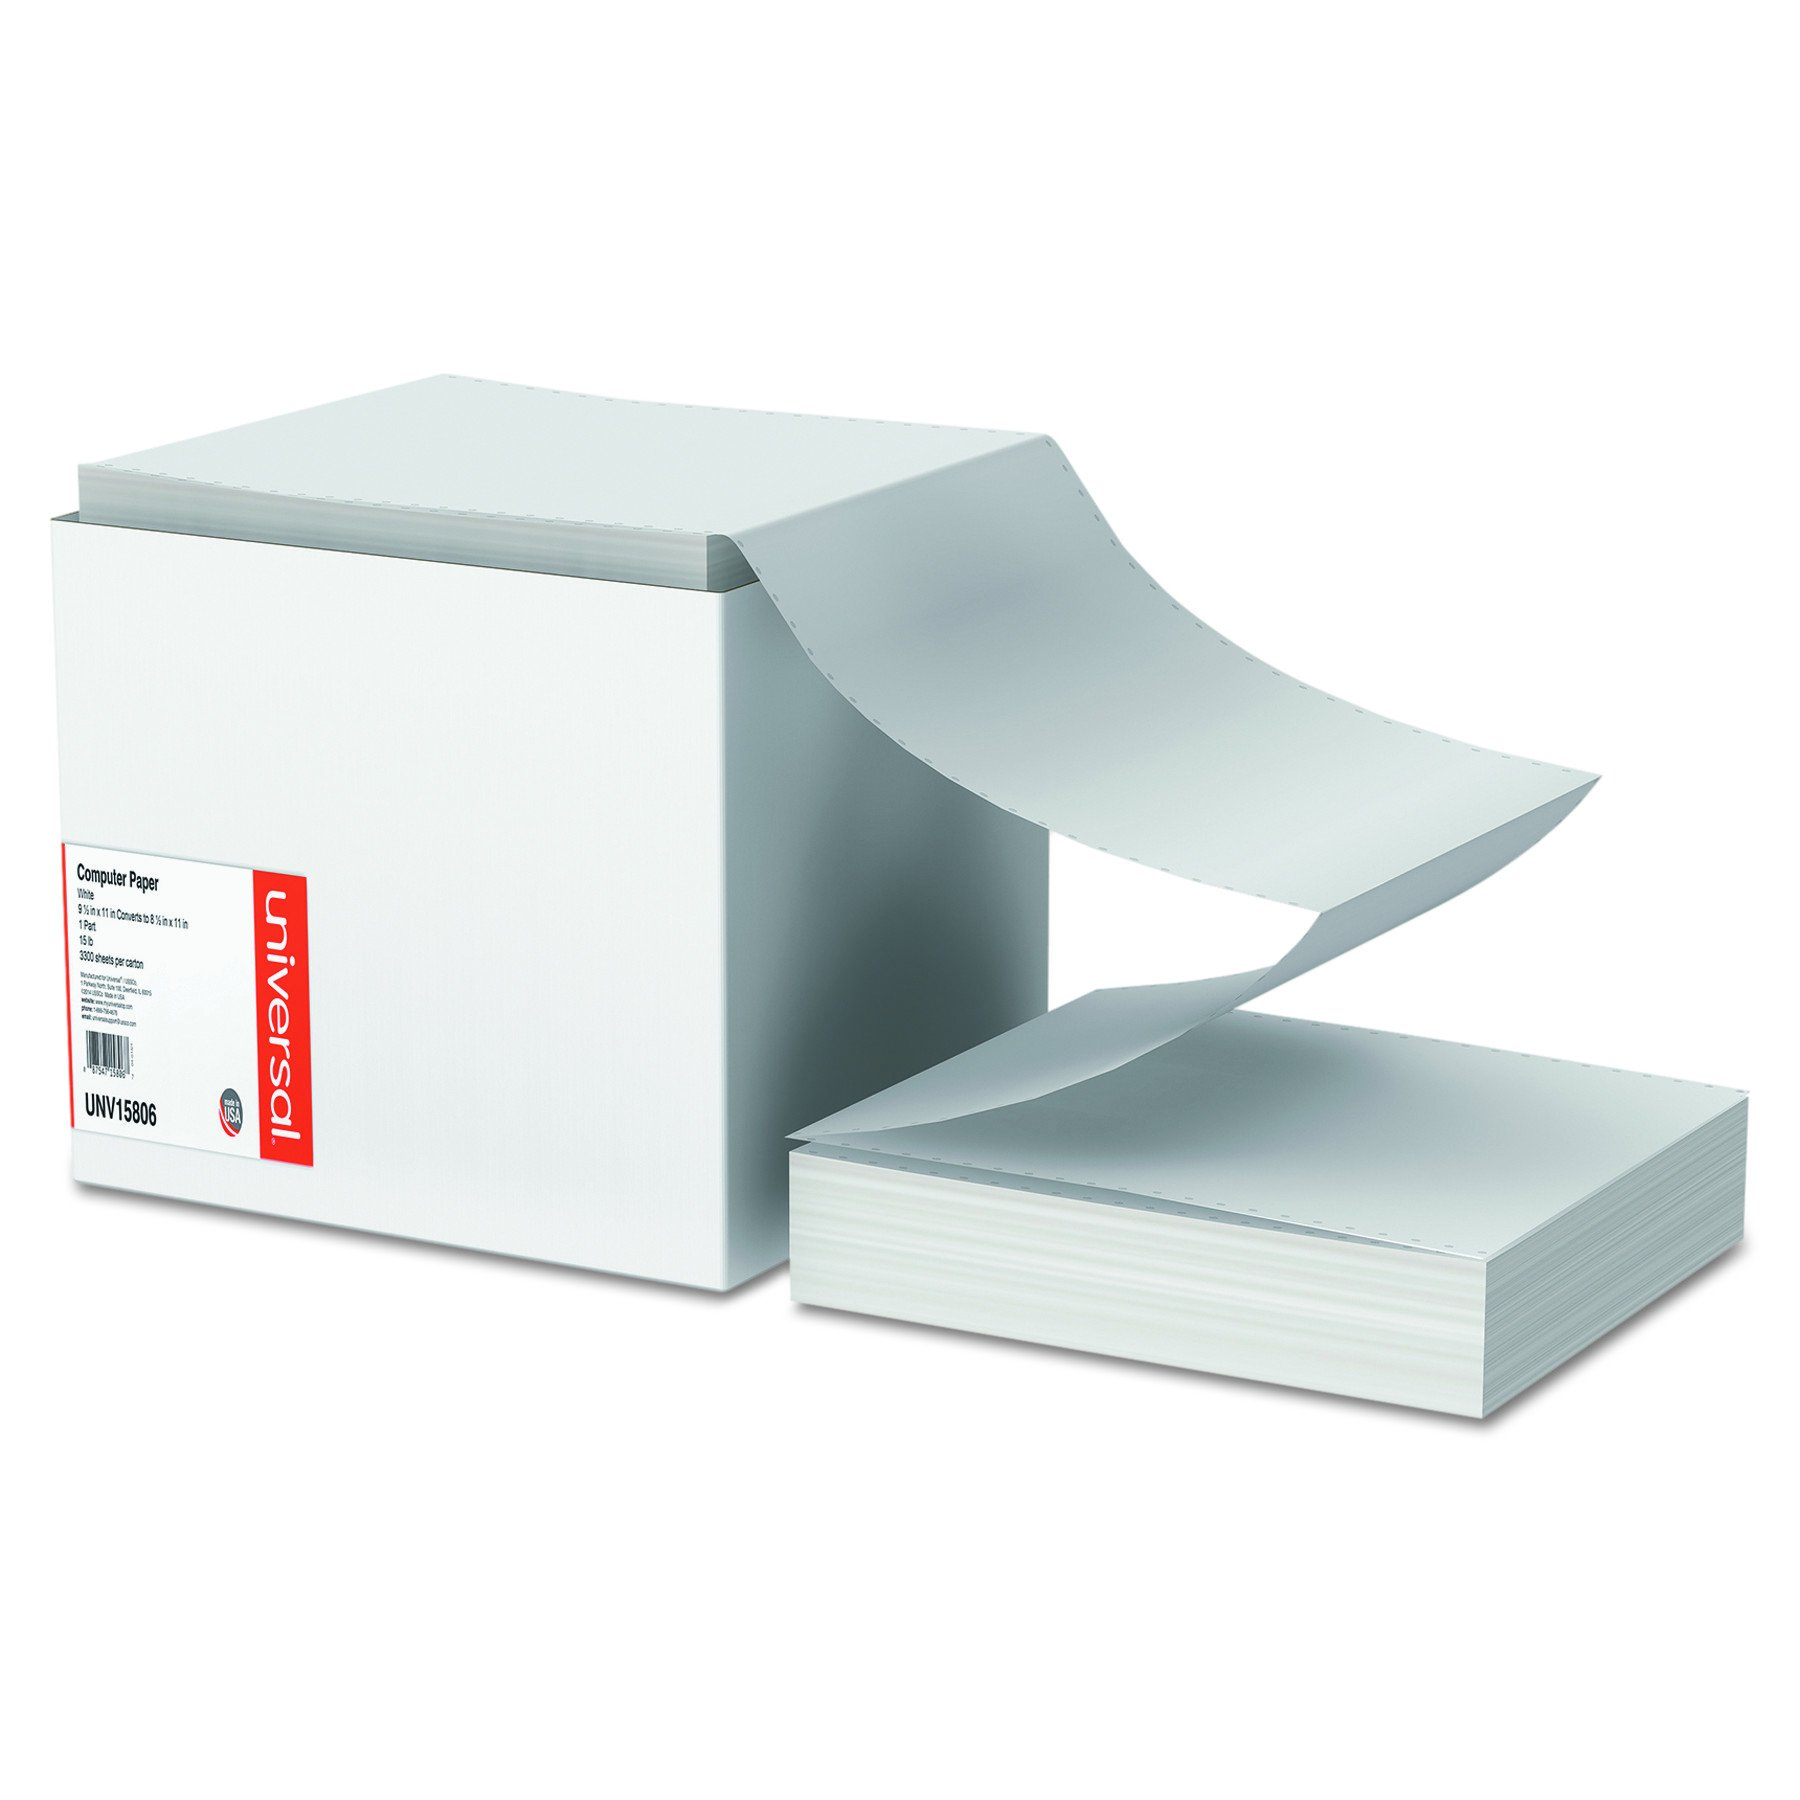 Universal Computer Paper, 15lb, 9-1/2'' x 11'' , Letter Trim Perforations, White, 3300 Sheets (15806)